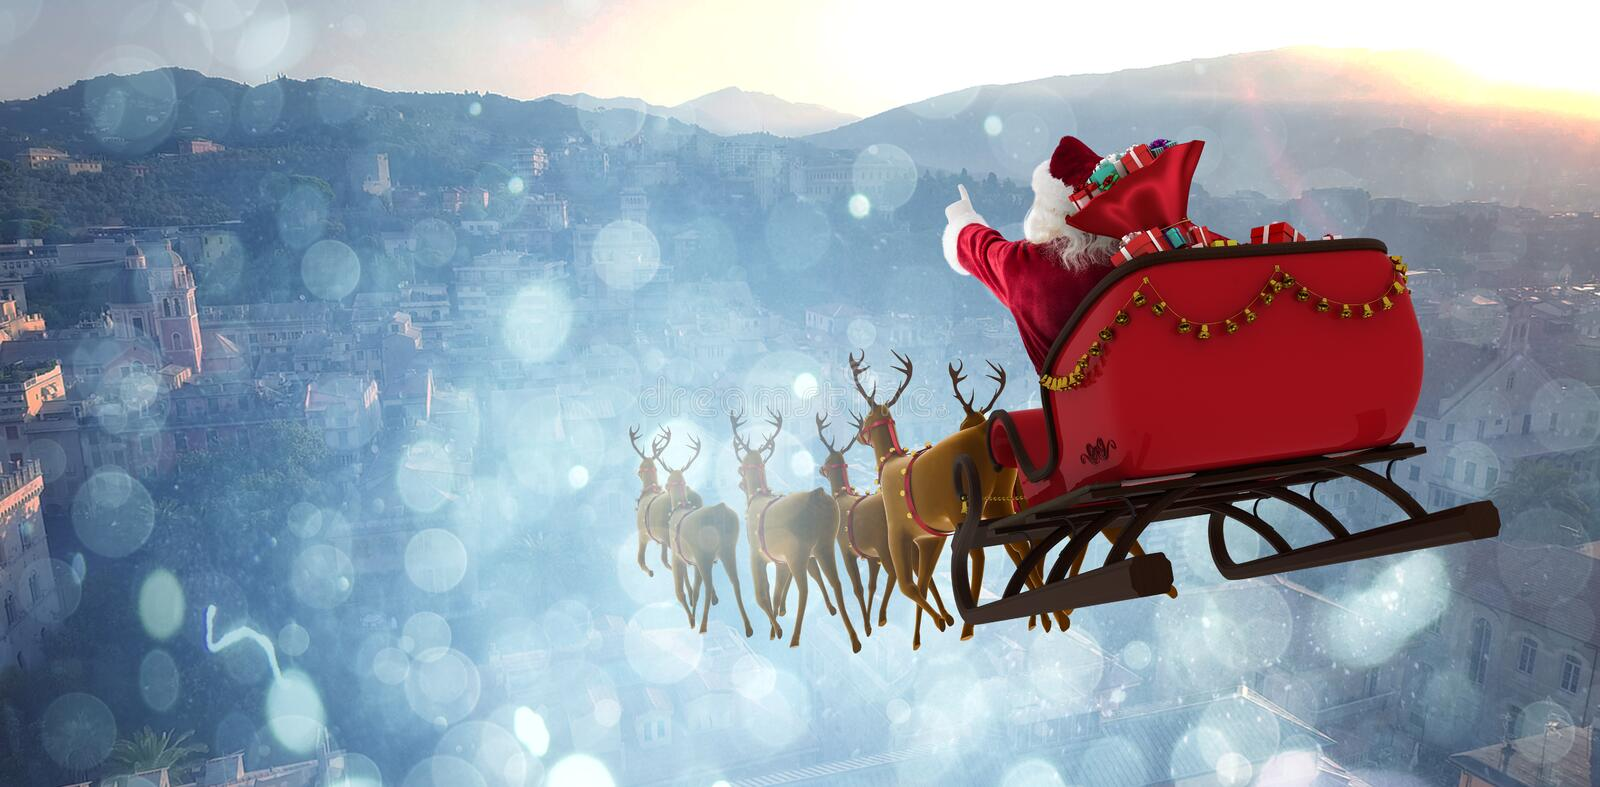 Composite image of santa claus riding on sleigh with gift box royalty free stock images